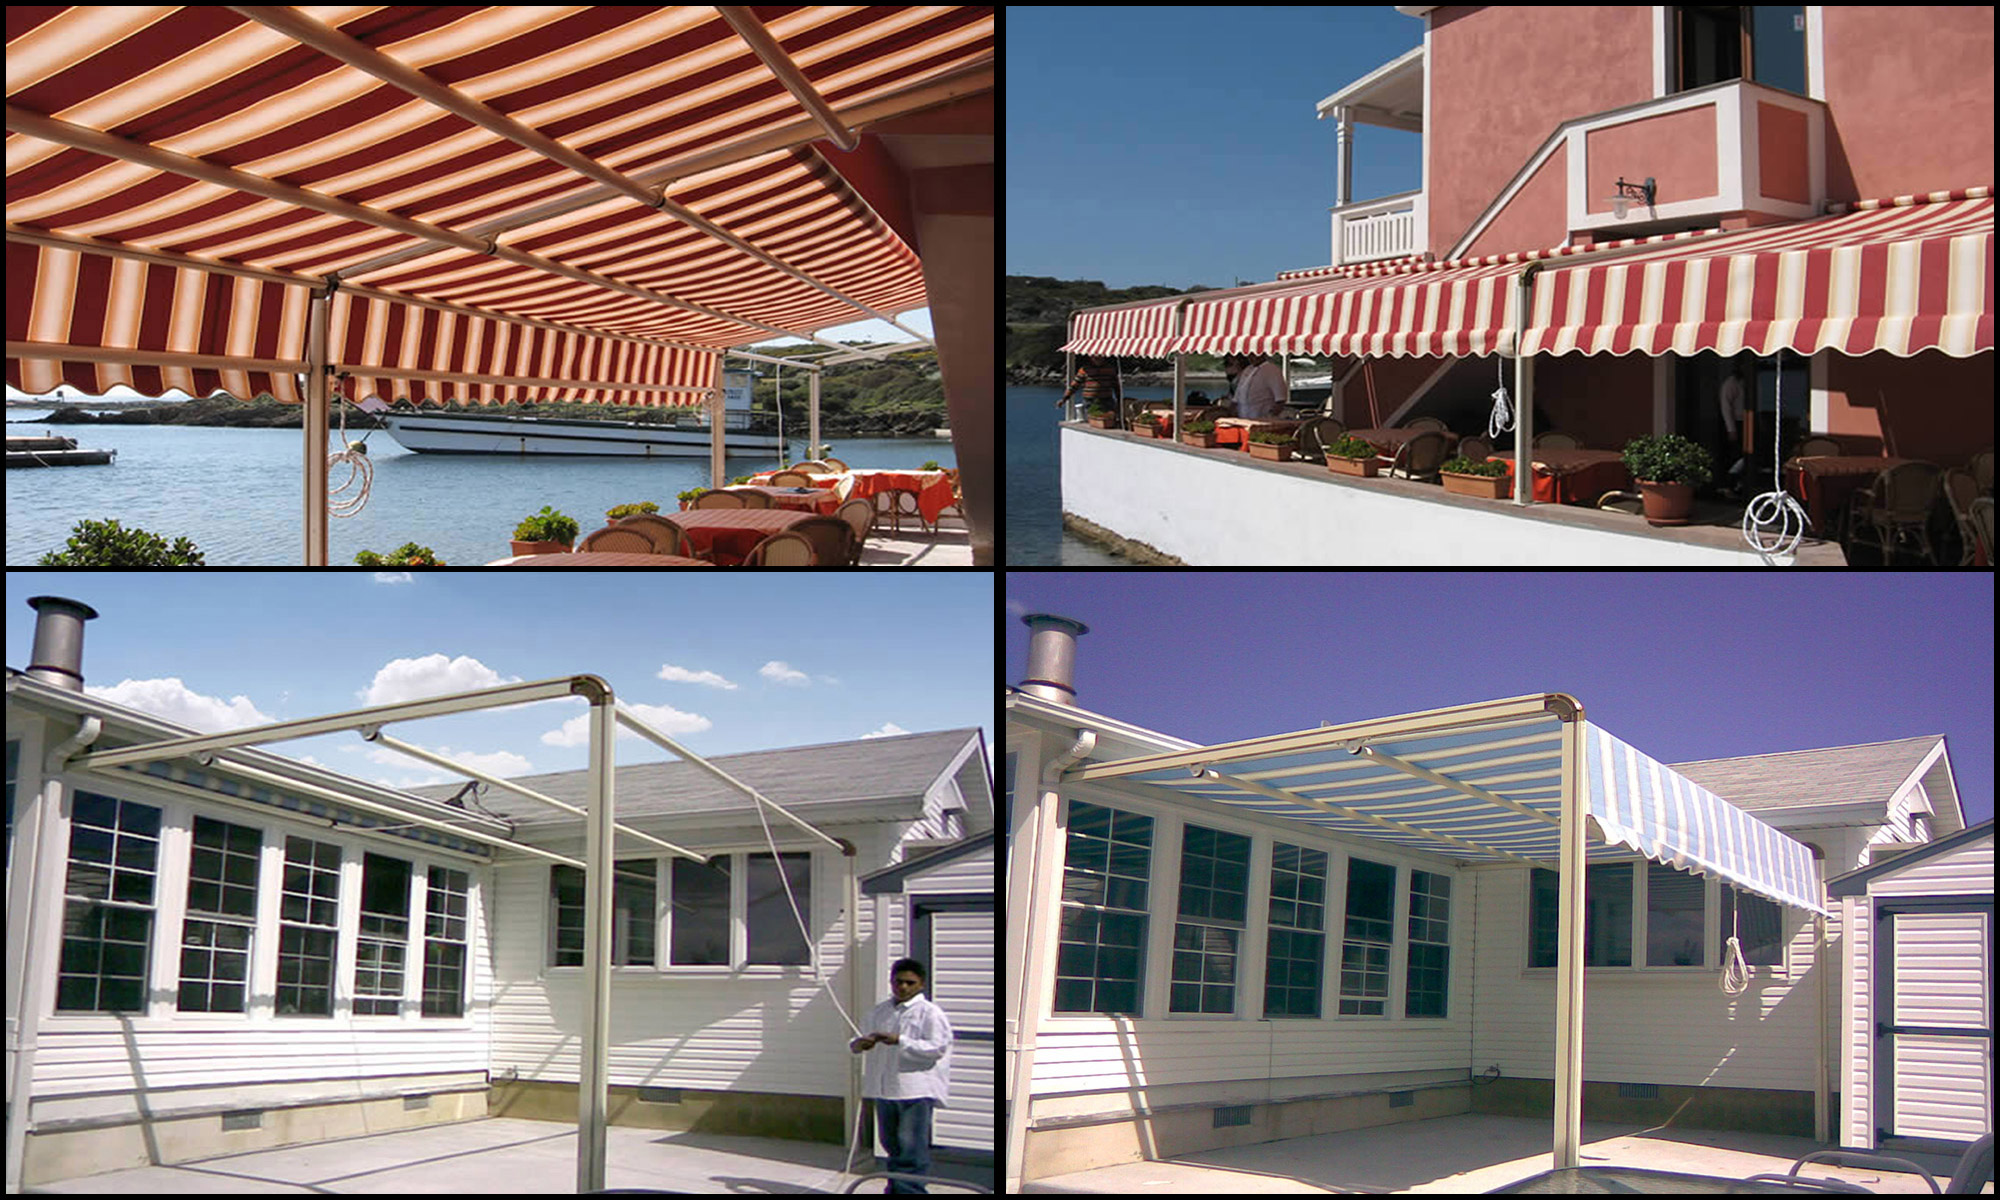 disposition island brooklyn home accesskeyid queens awning long alloworigin awnings bronx free nyc estimate company